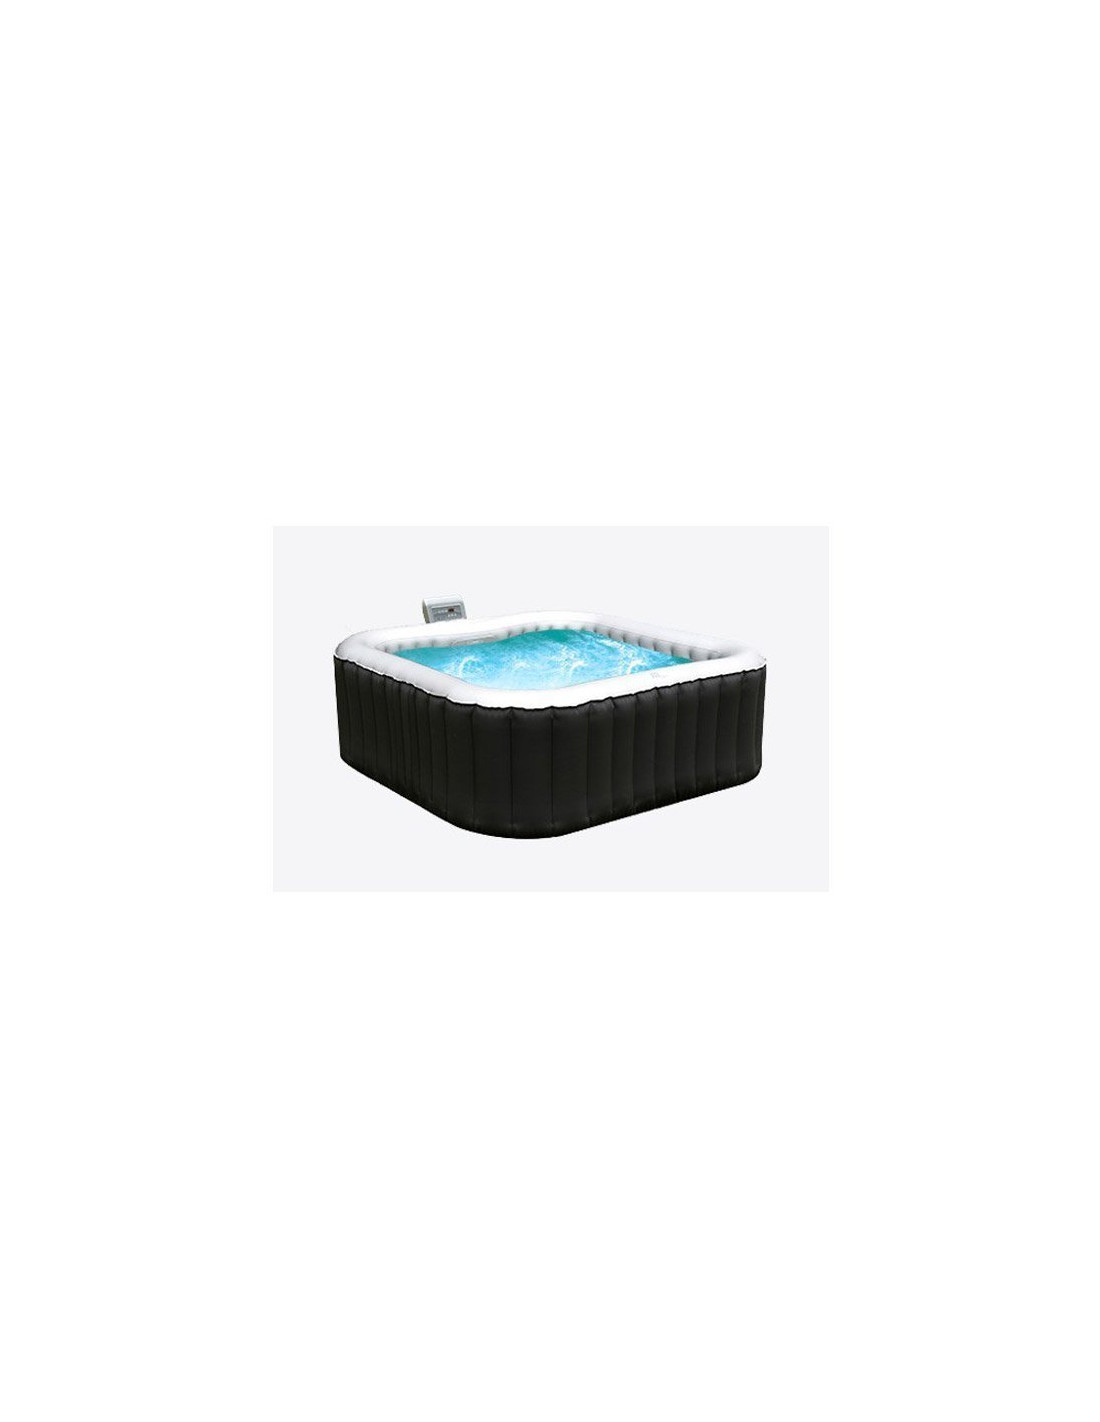 Spa gonflable mspa alpine lite 4 6 places - Promo spa gonflable ...